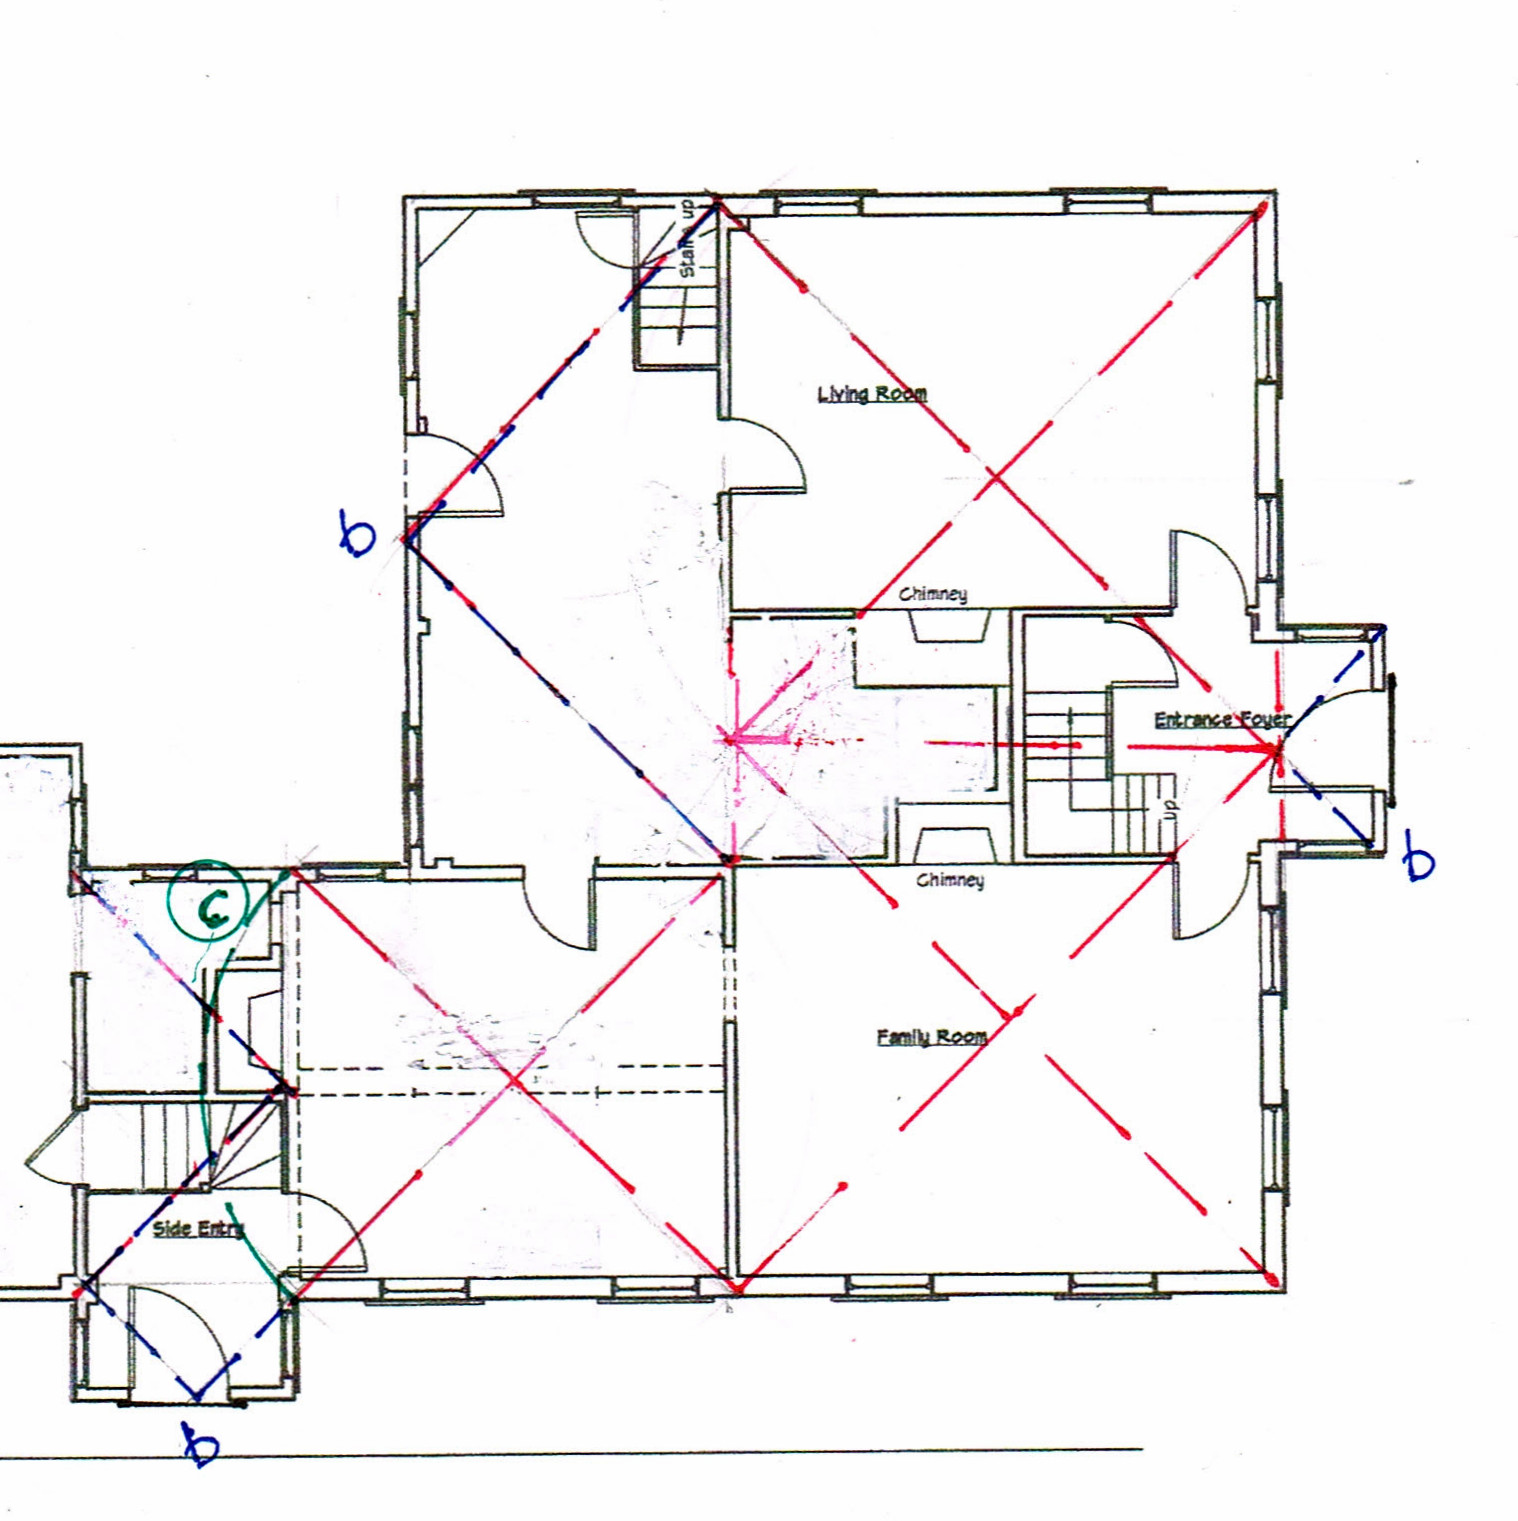 draw plan furniture drawings to scale layout floor plan template best free floor plan creator create bathroom floor plans house plan drawing template free with draw plan